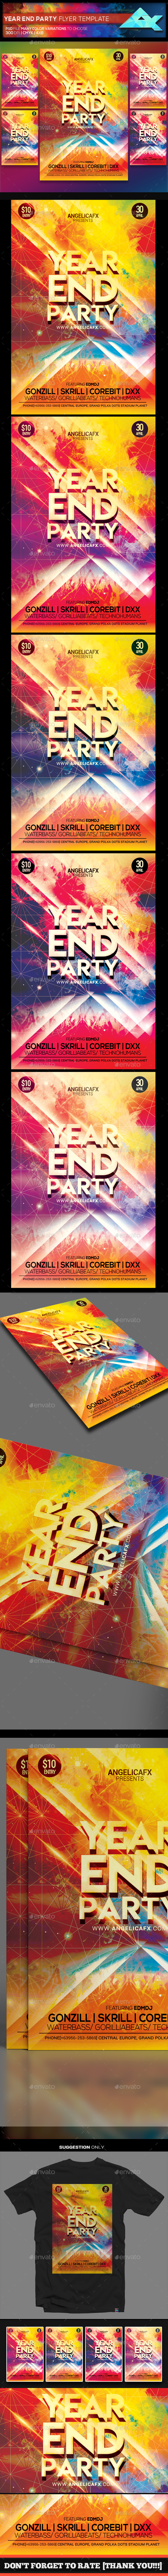 GraphicRiver Year End Party Flyer Template 21111975